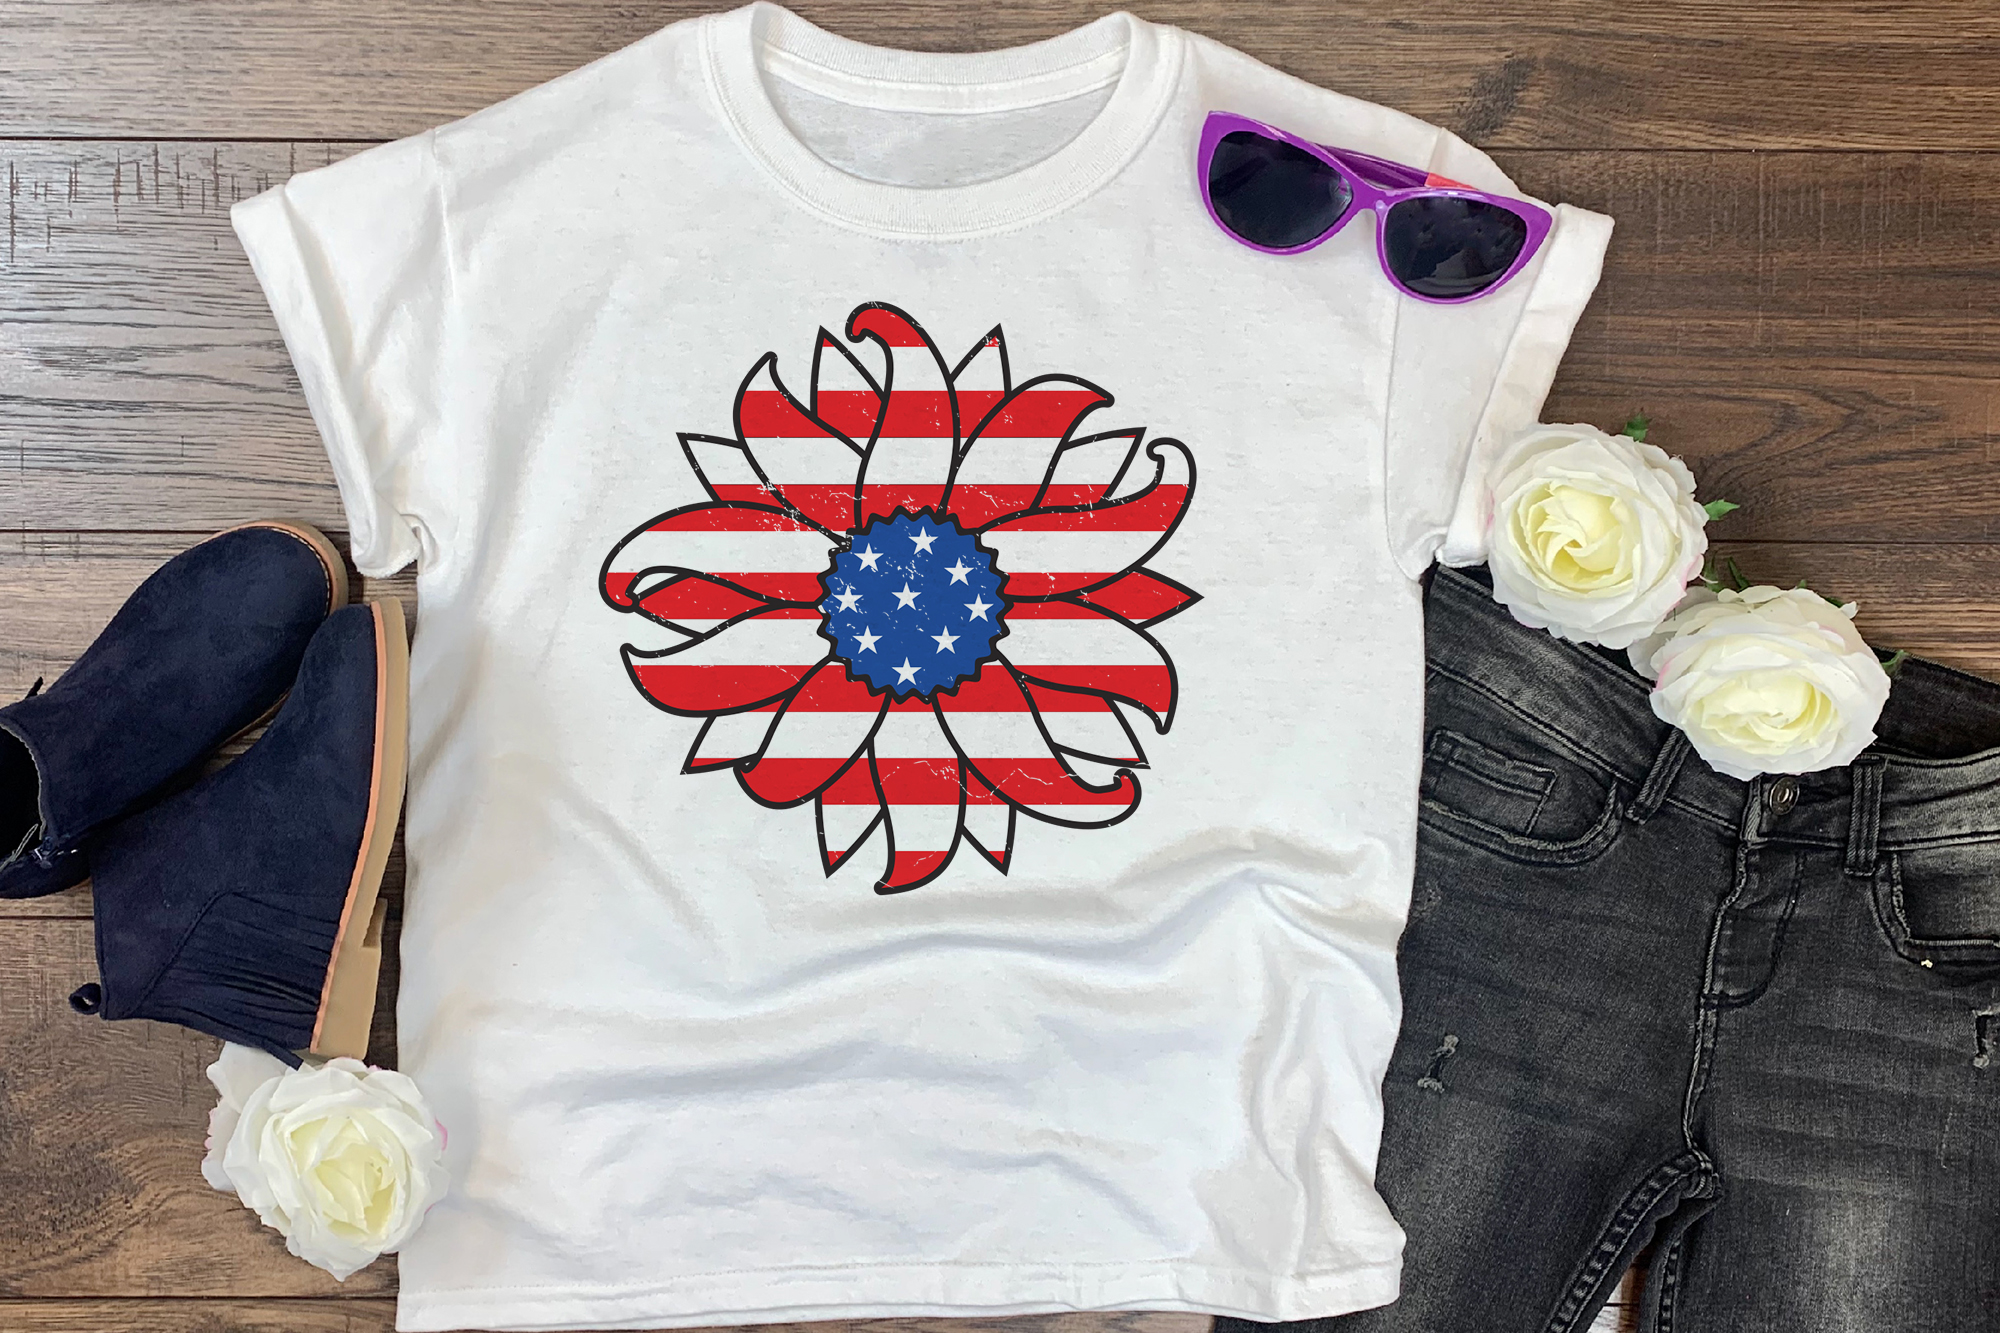 Download Free 4th Of July Sunflower Graphic By Craftlabsvg Creative Fabrica for Cricut Explore, Silhouette and other cutting machines.